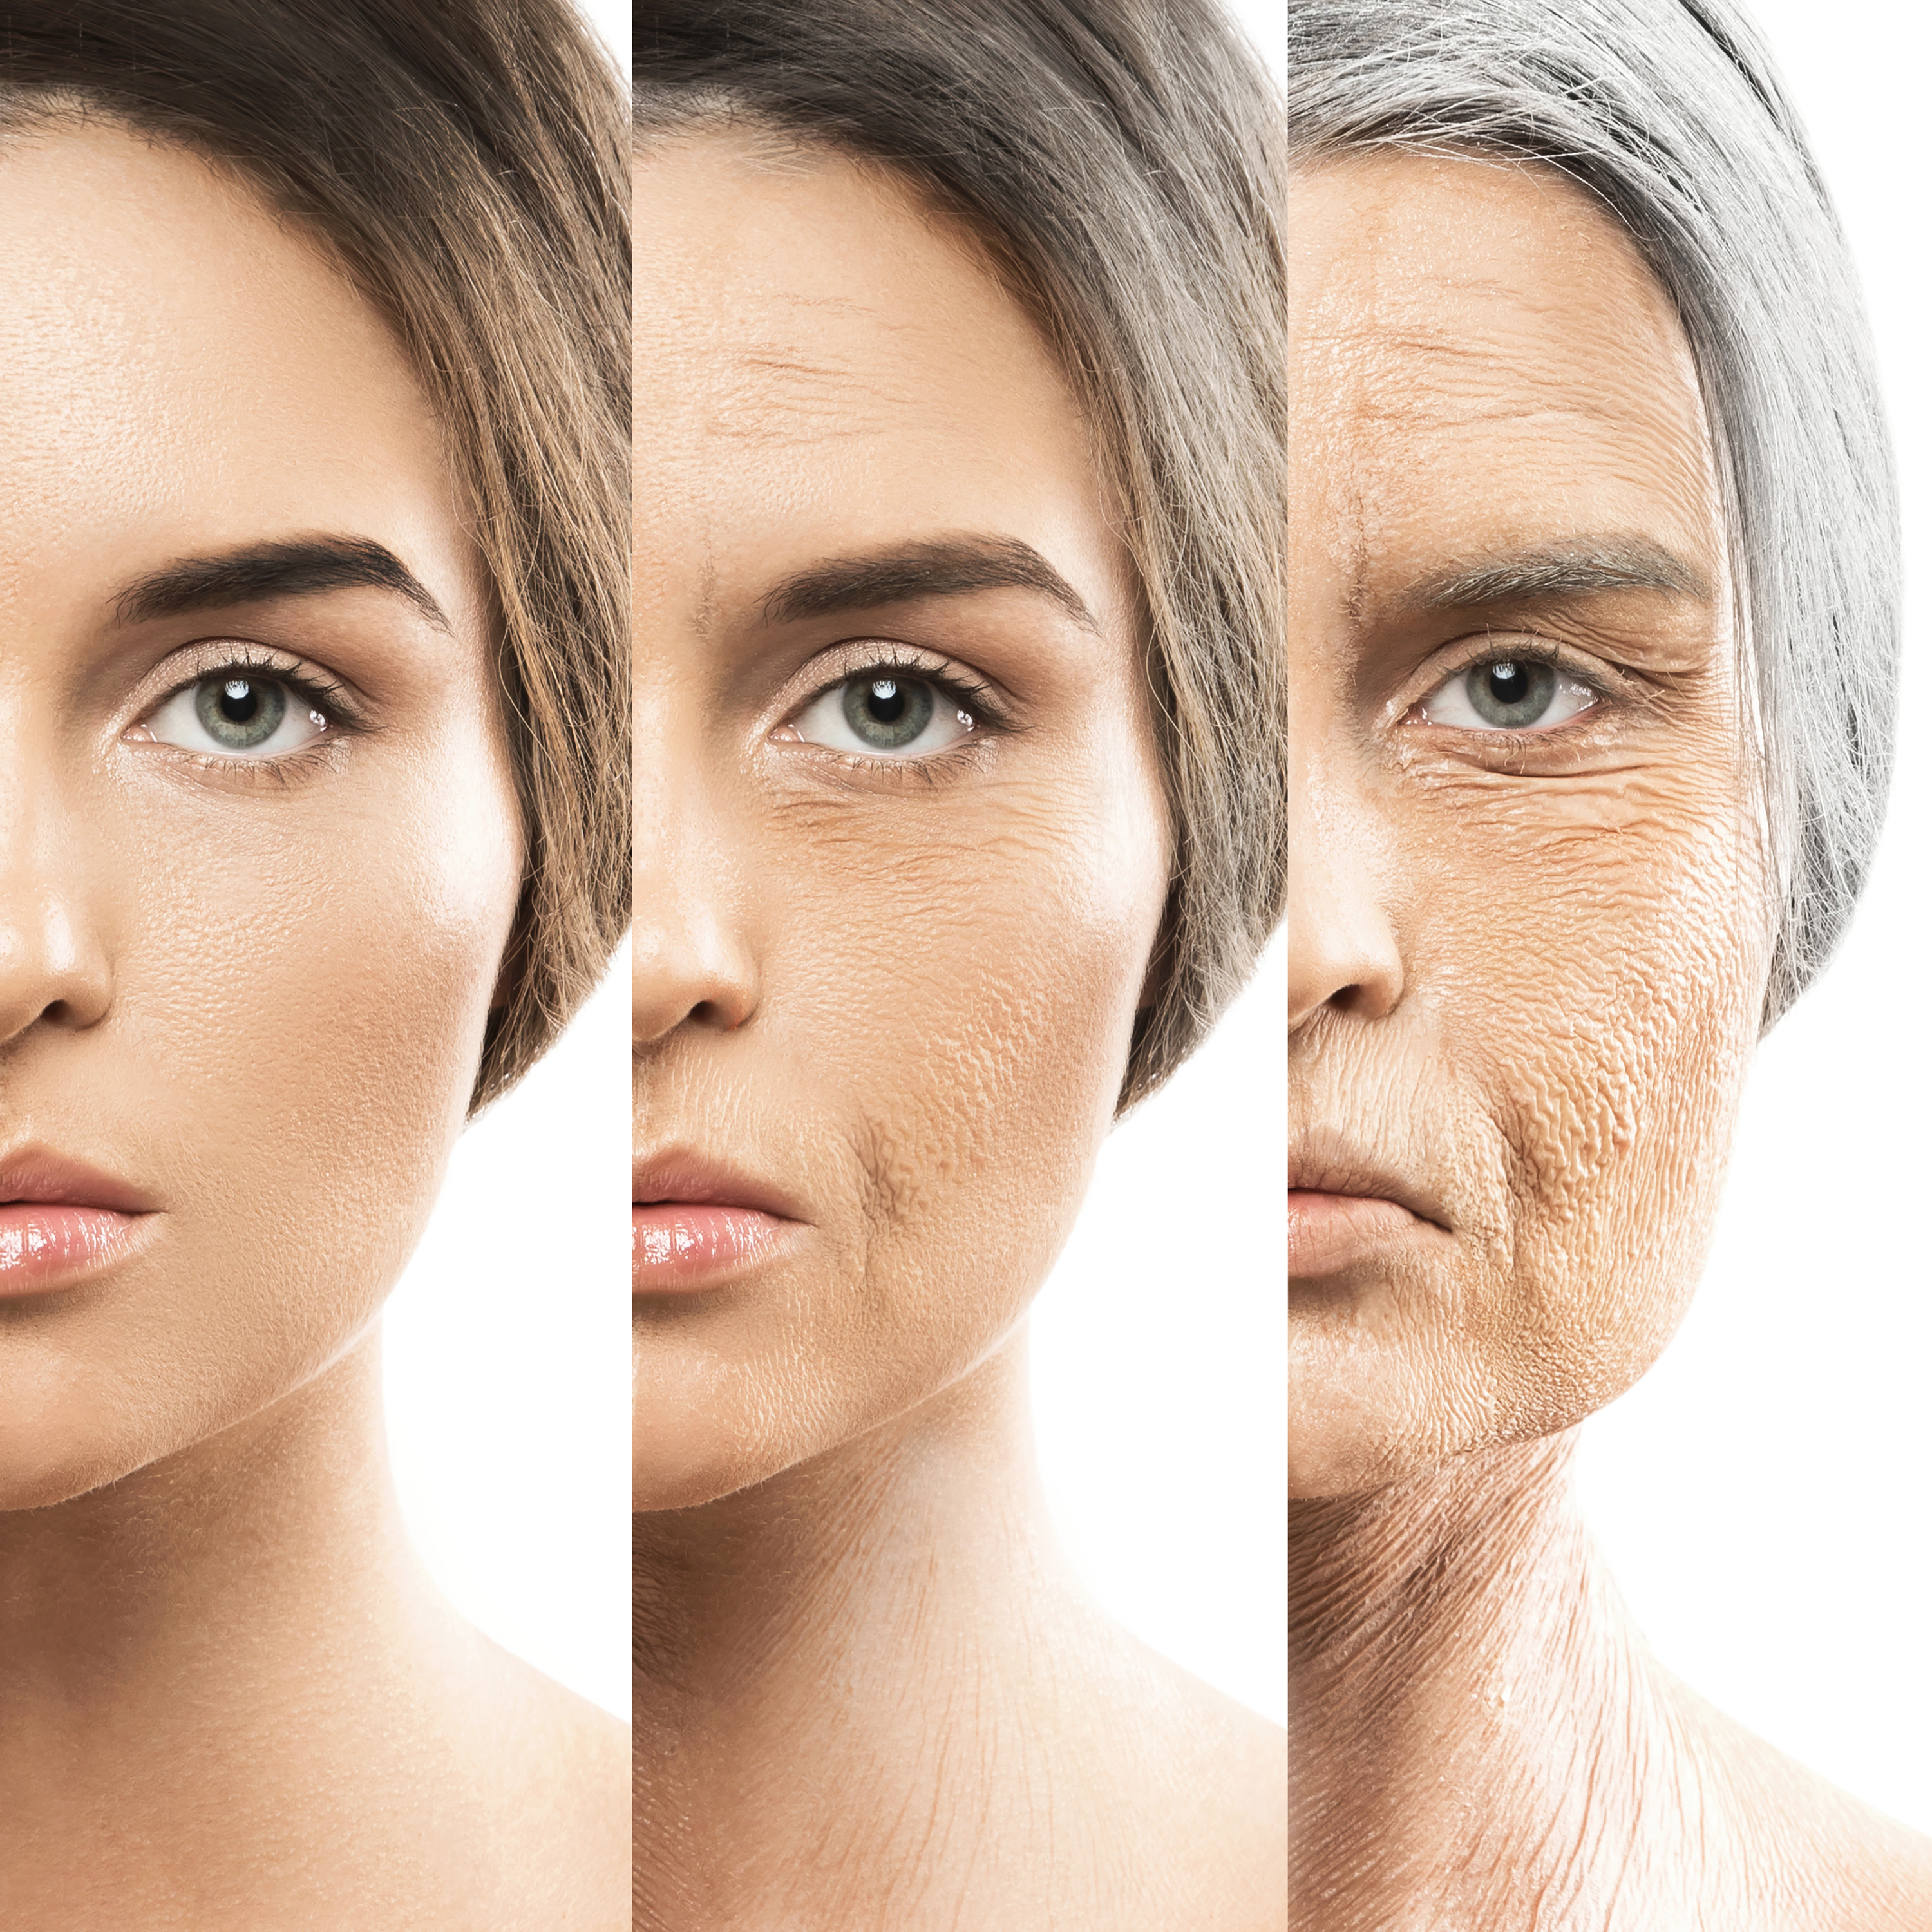 How to stop the effects of aging